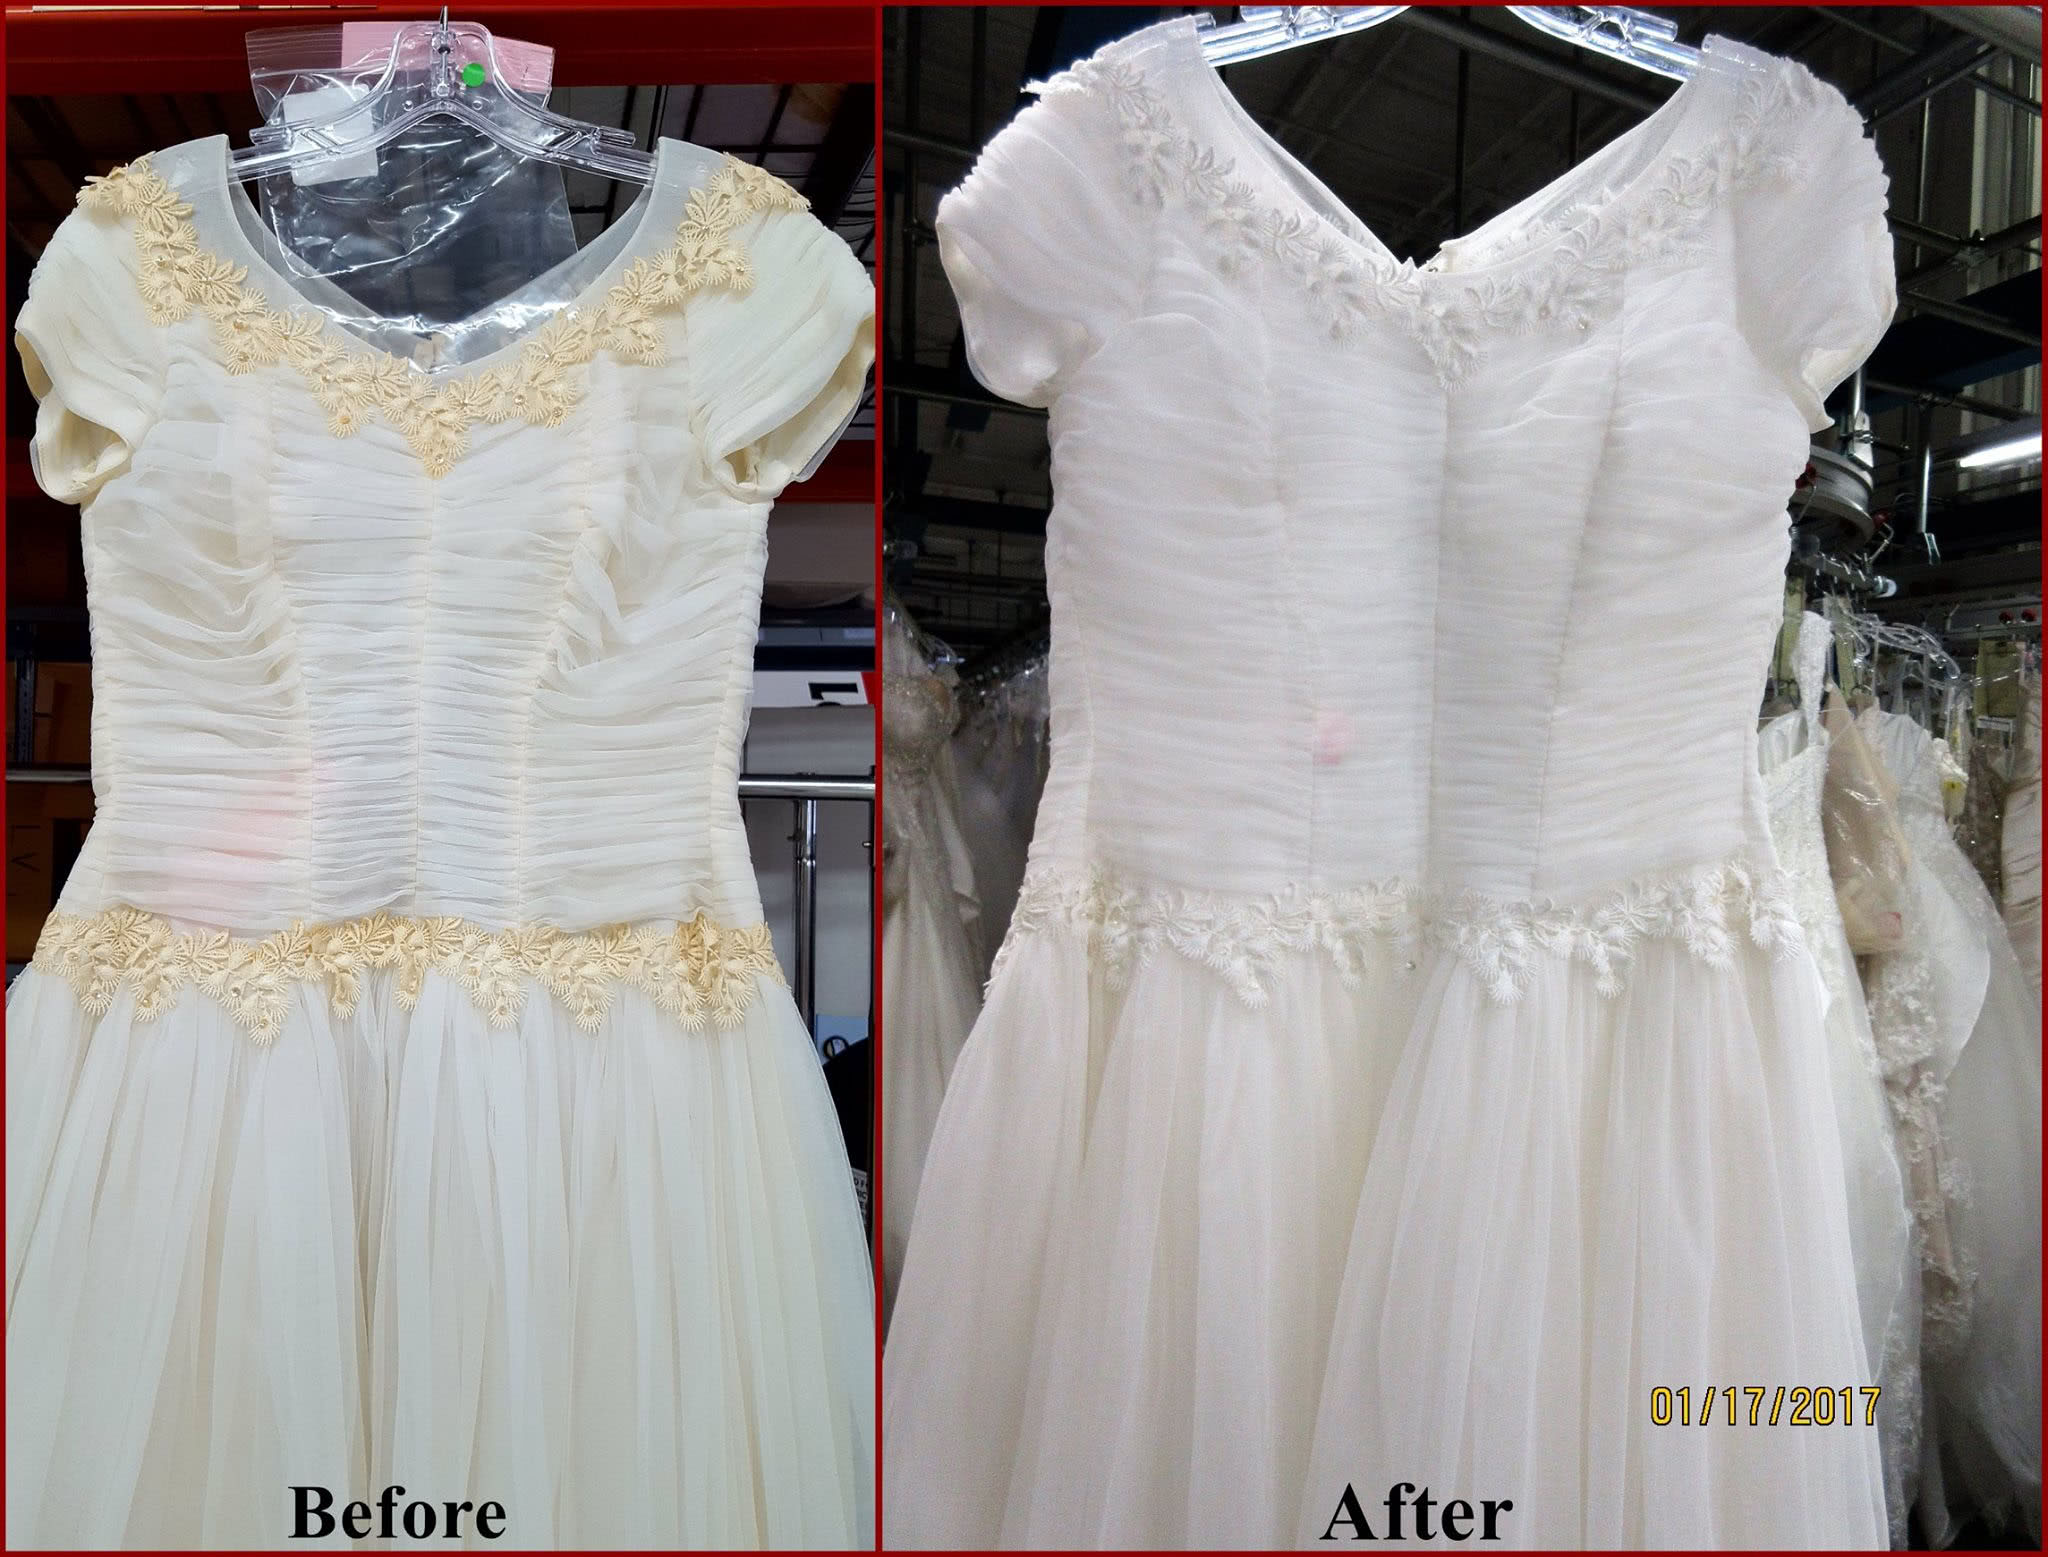 Yellowed wedding dress adornments restored to white